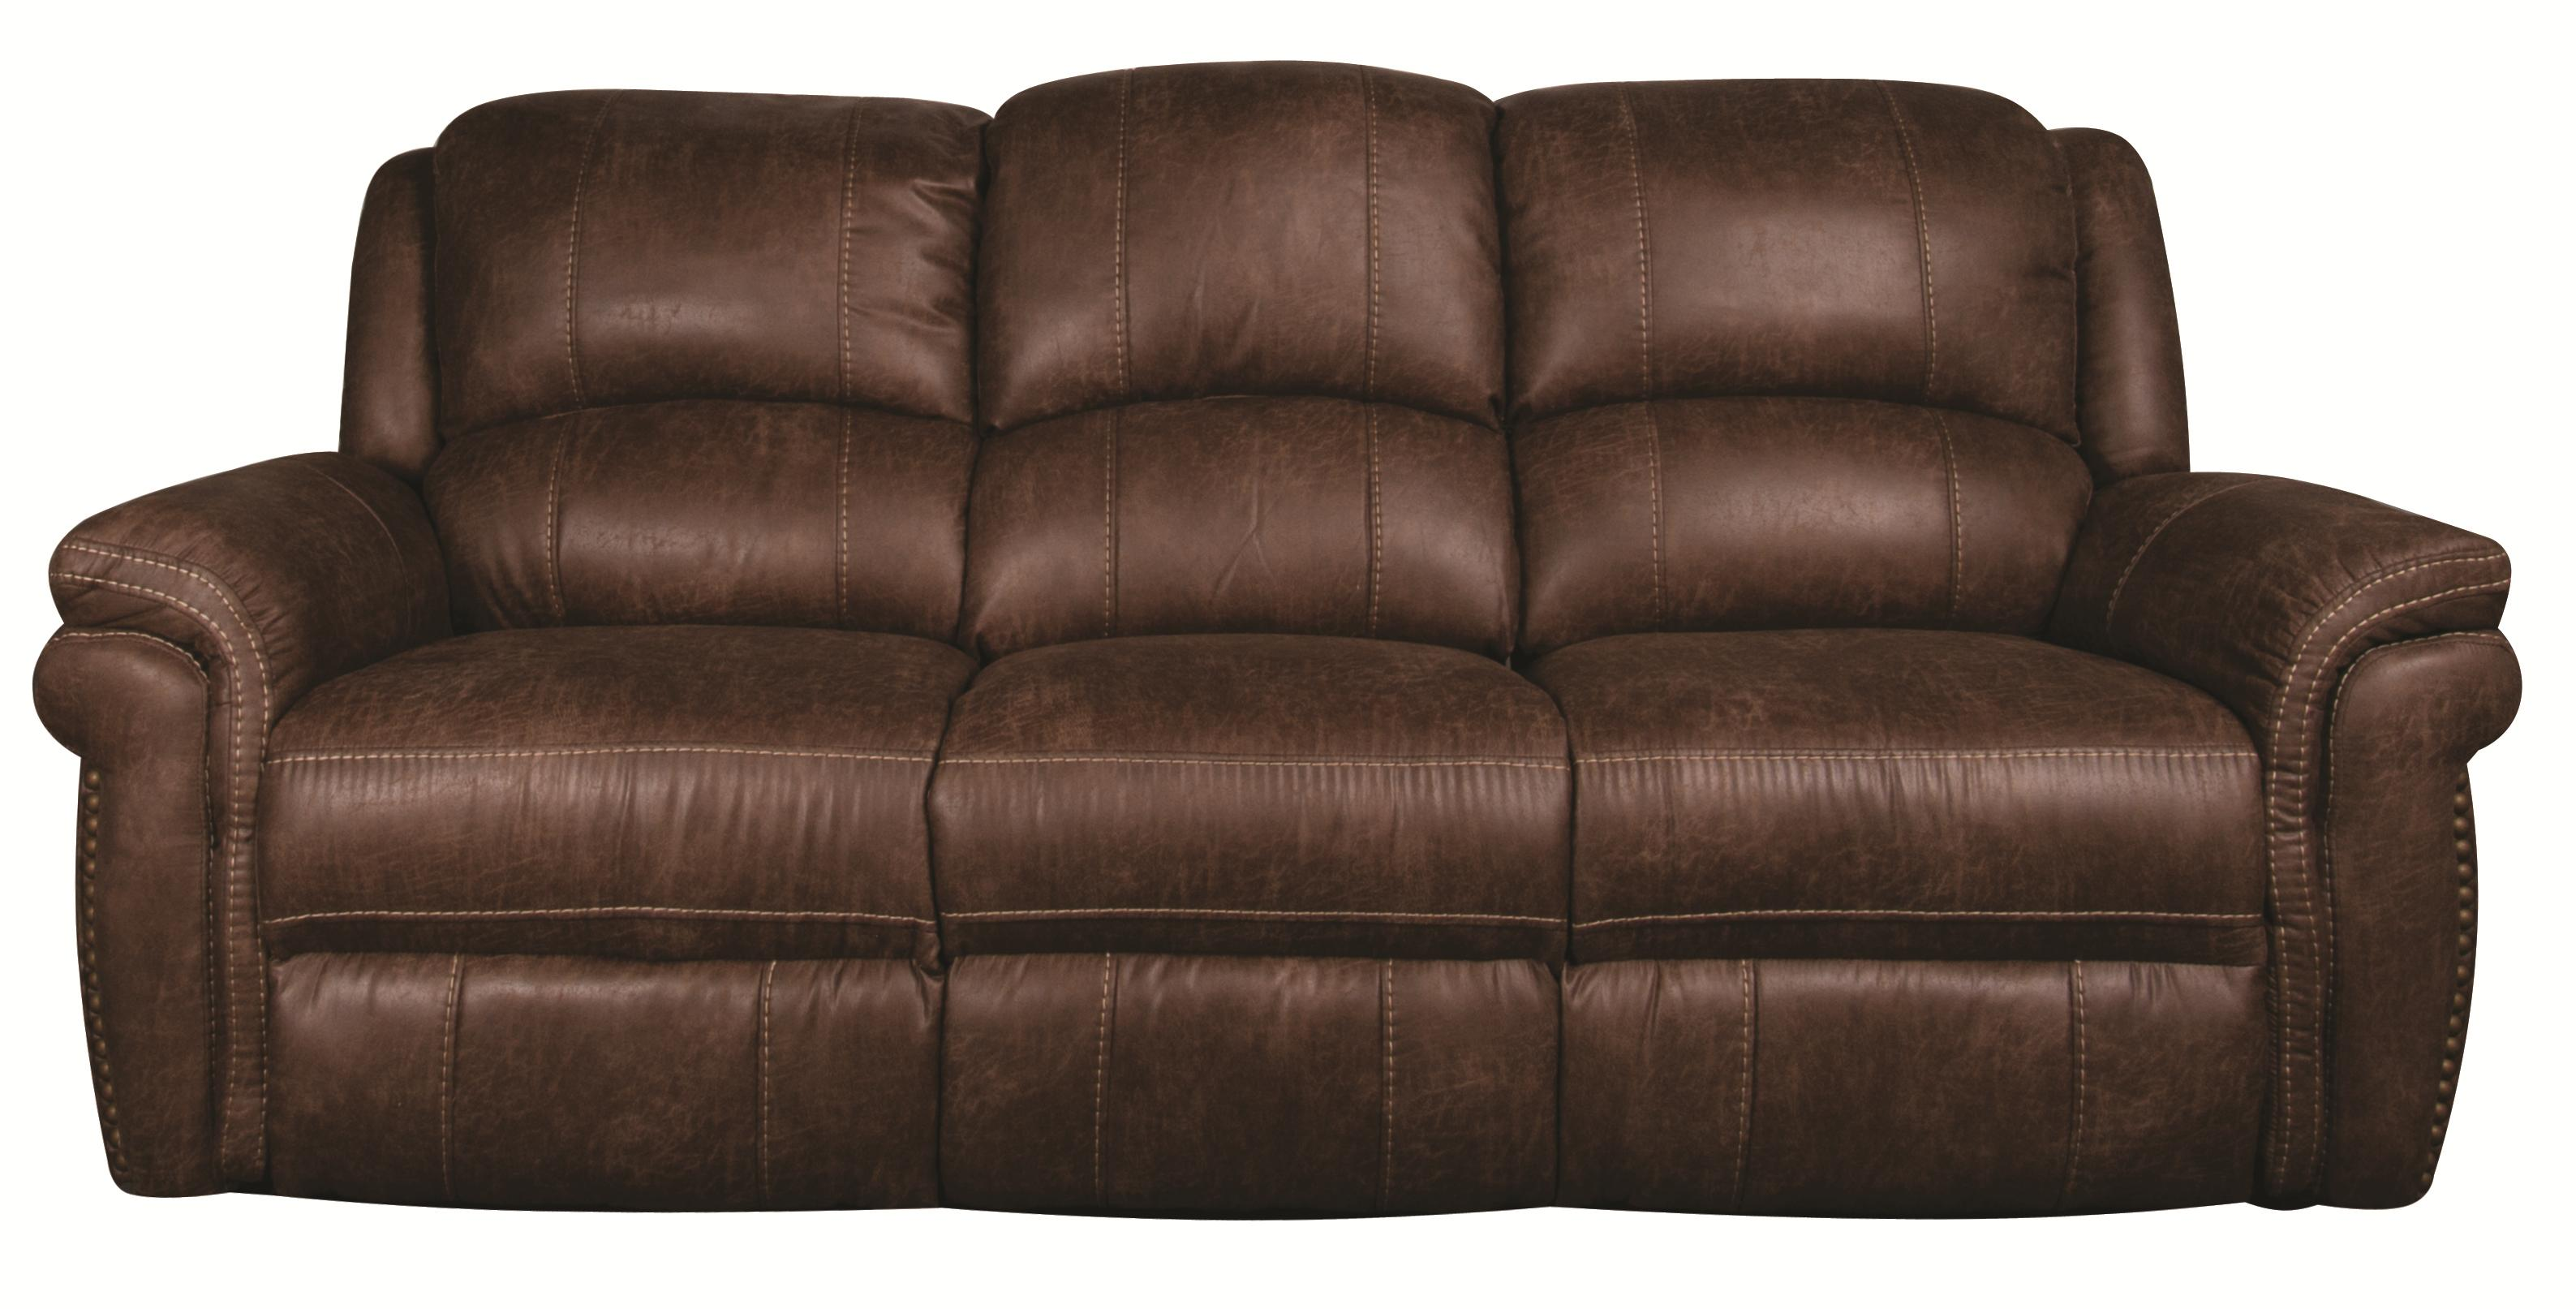 Morris Home Furnishings Beau Beau Power Reclining Sofa - Item Number: 102848009